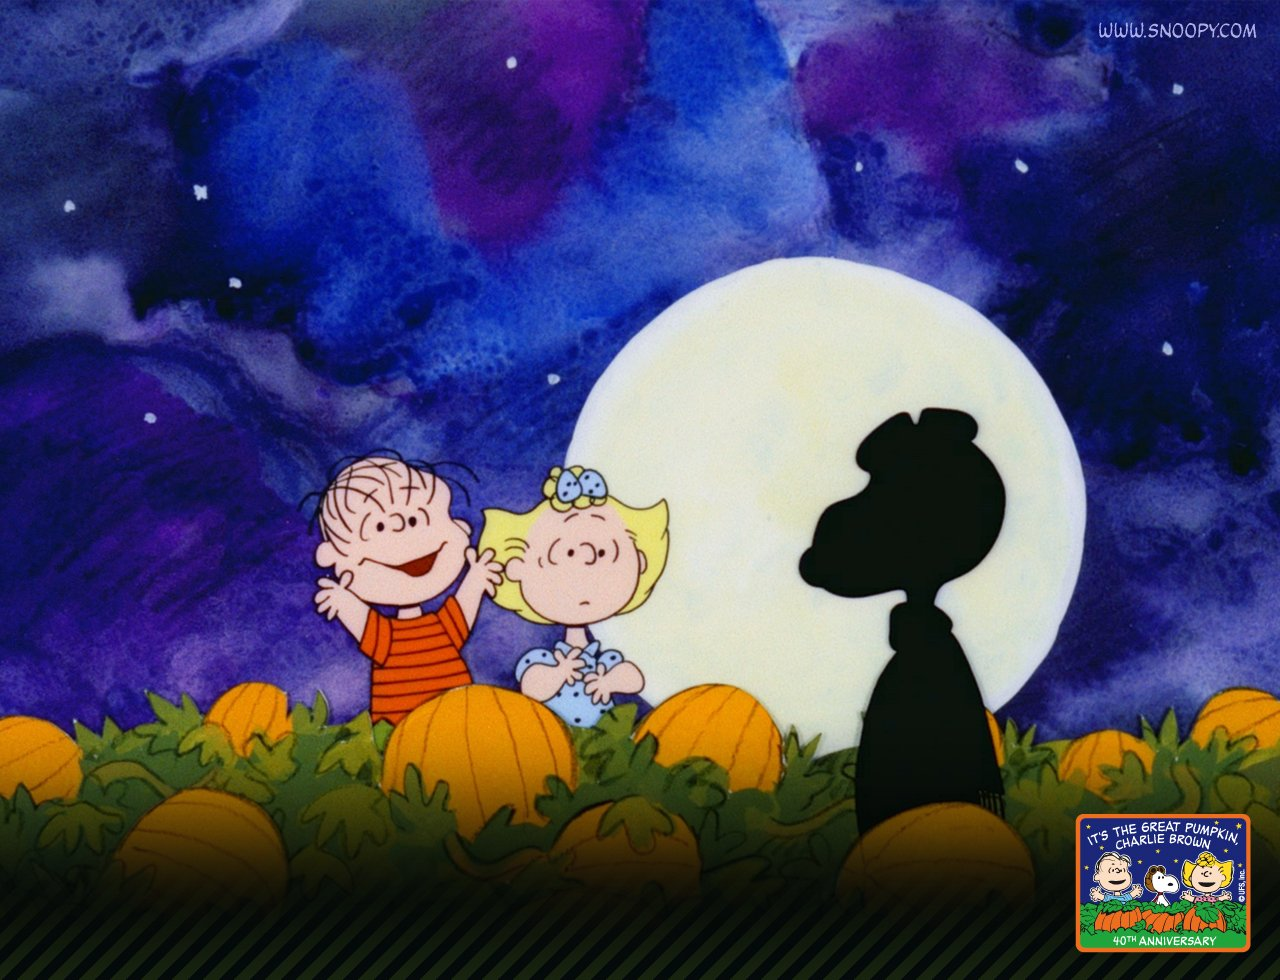 Wallpaper Charlie Brown Thanksgiving Wallpaper Halloween Screensavers 1280x980